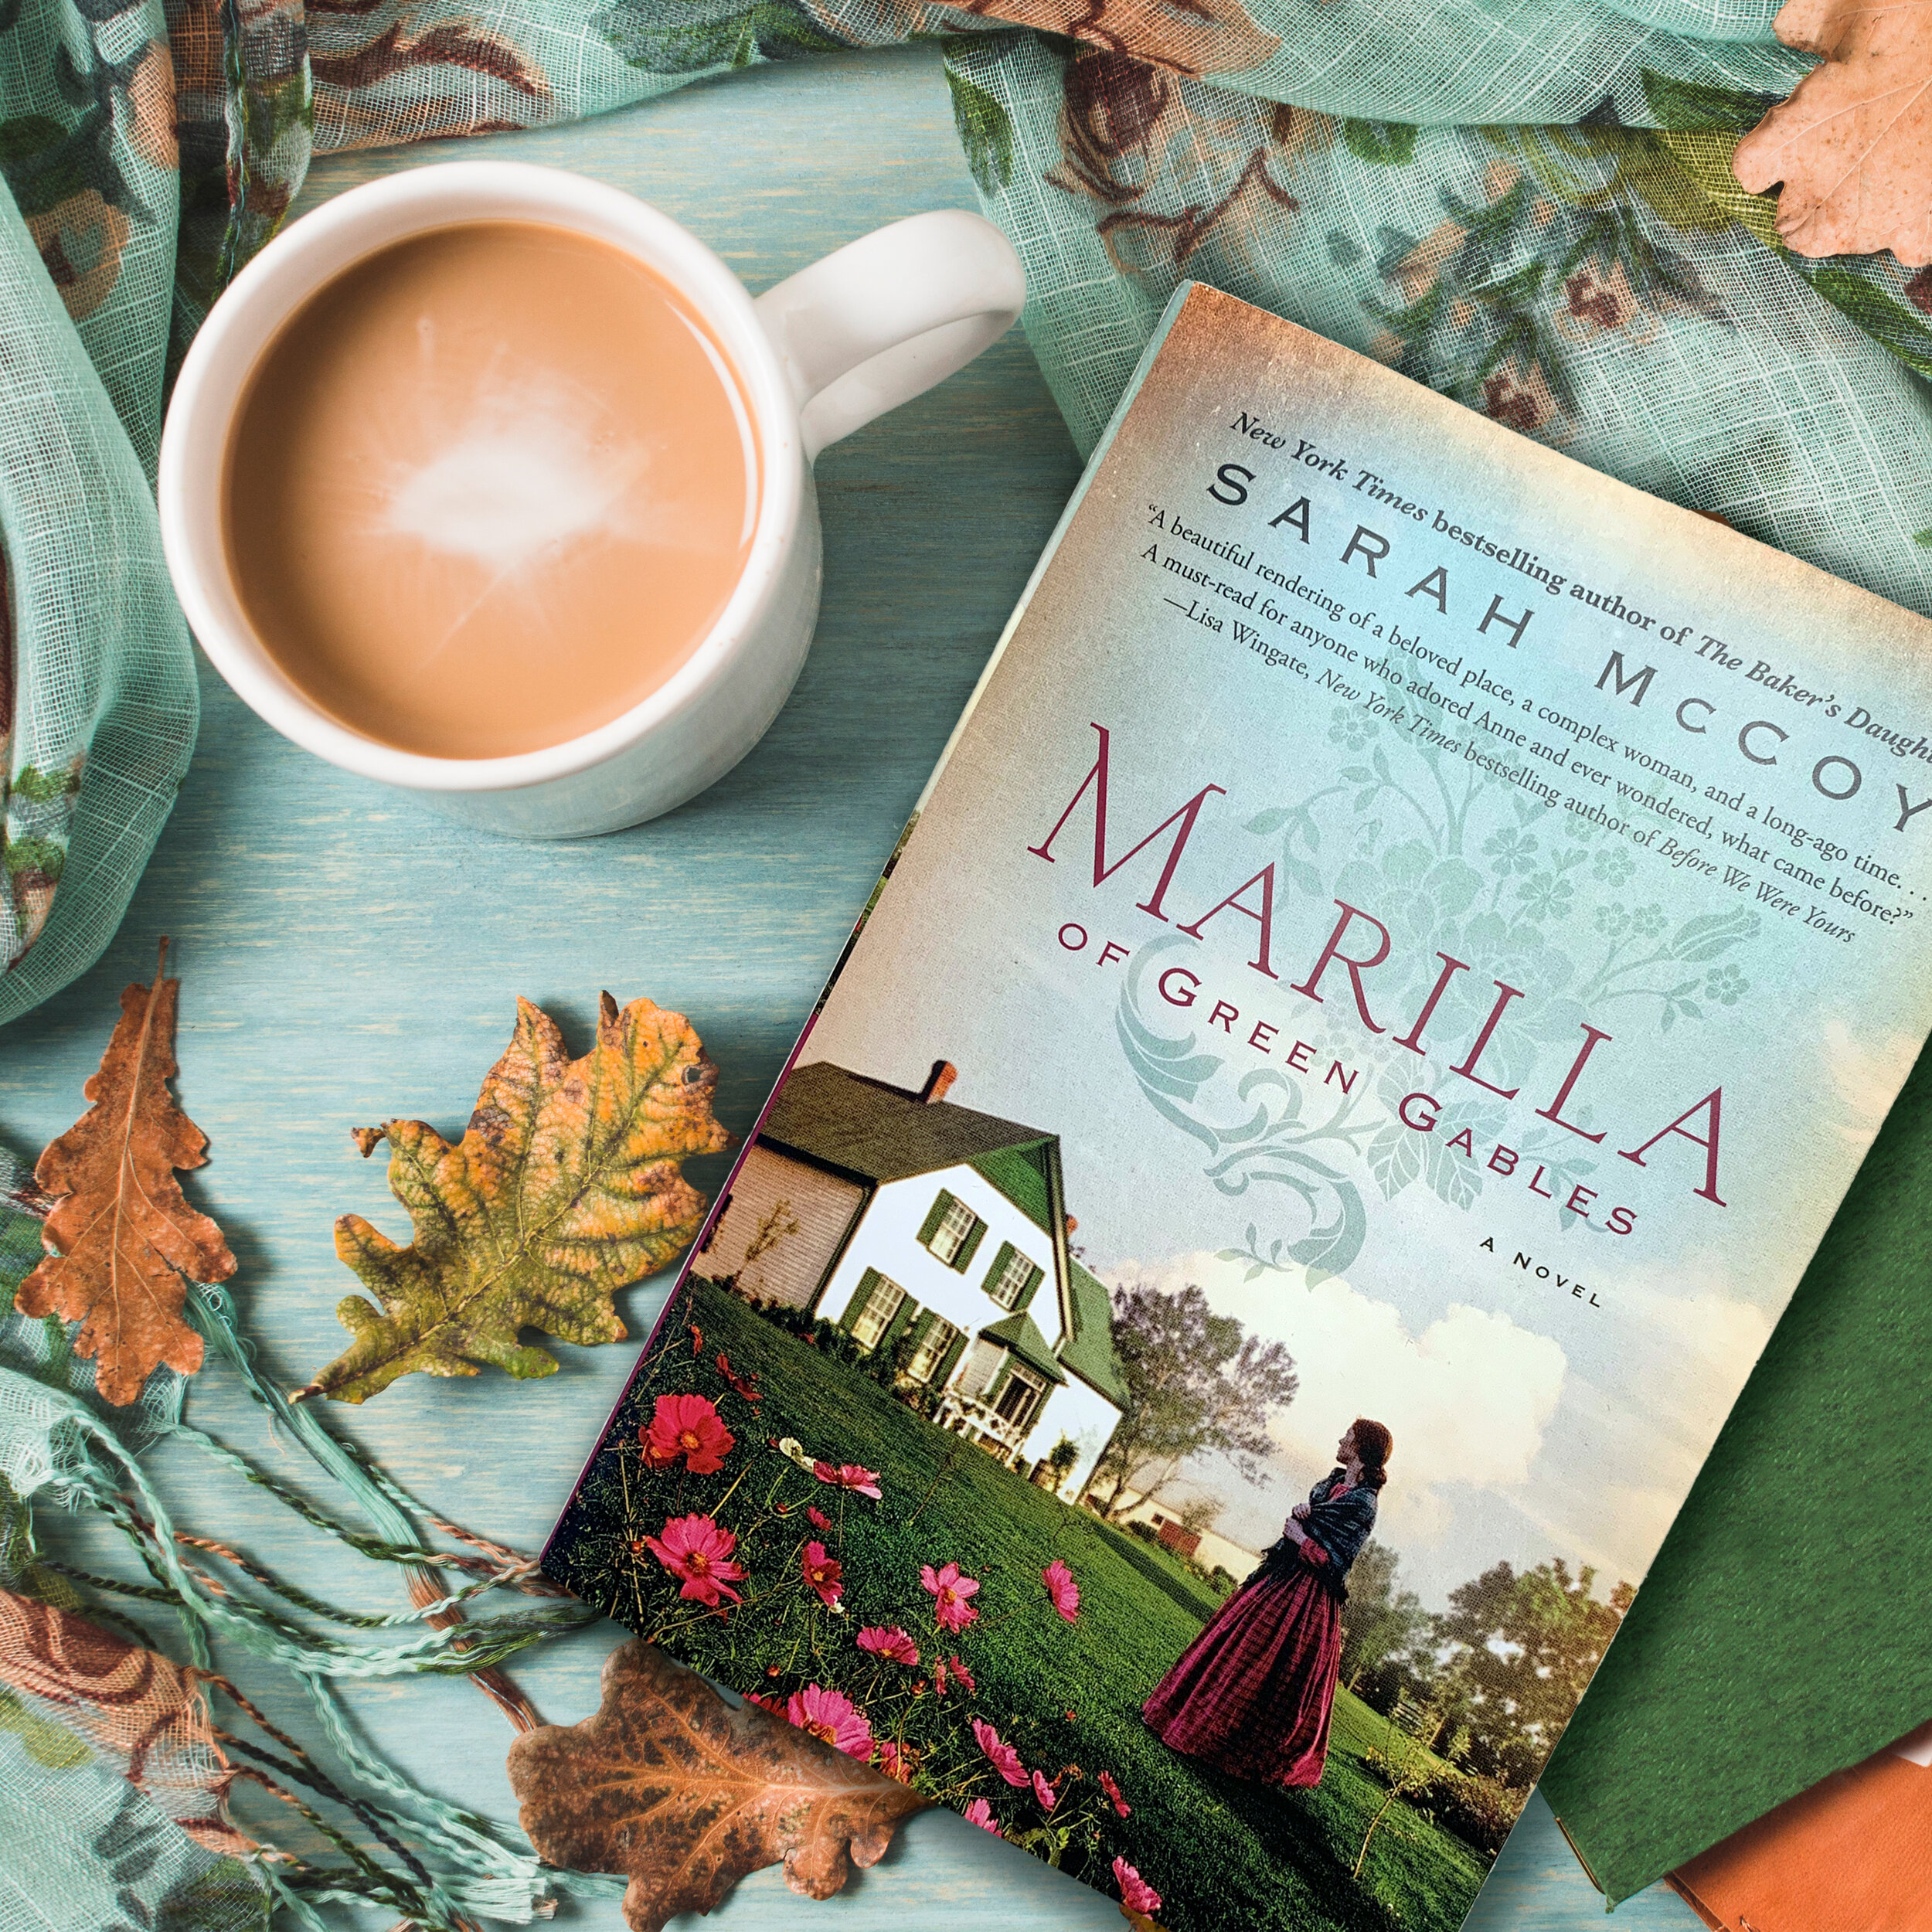 ** Book Review for MARILLA OF GREEN GABLES by Sarah McCoy **